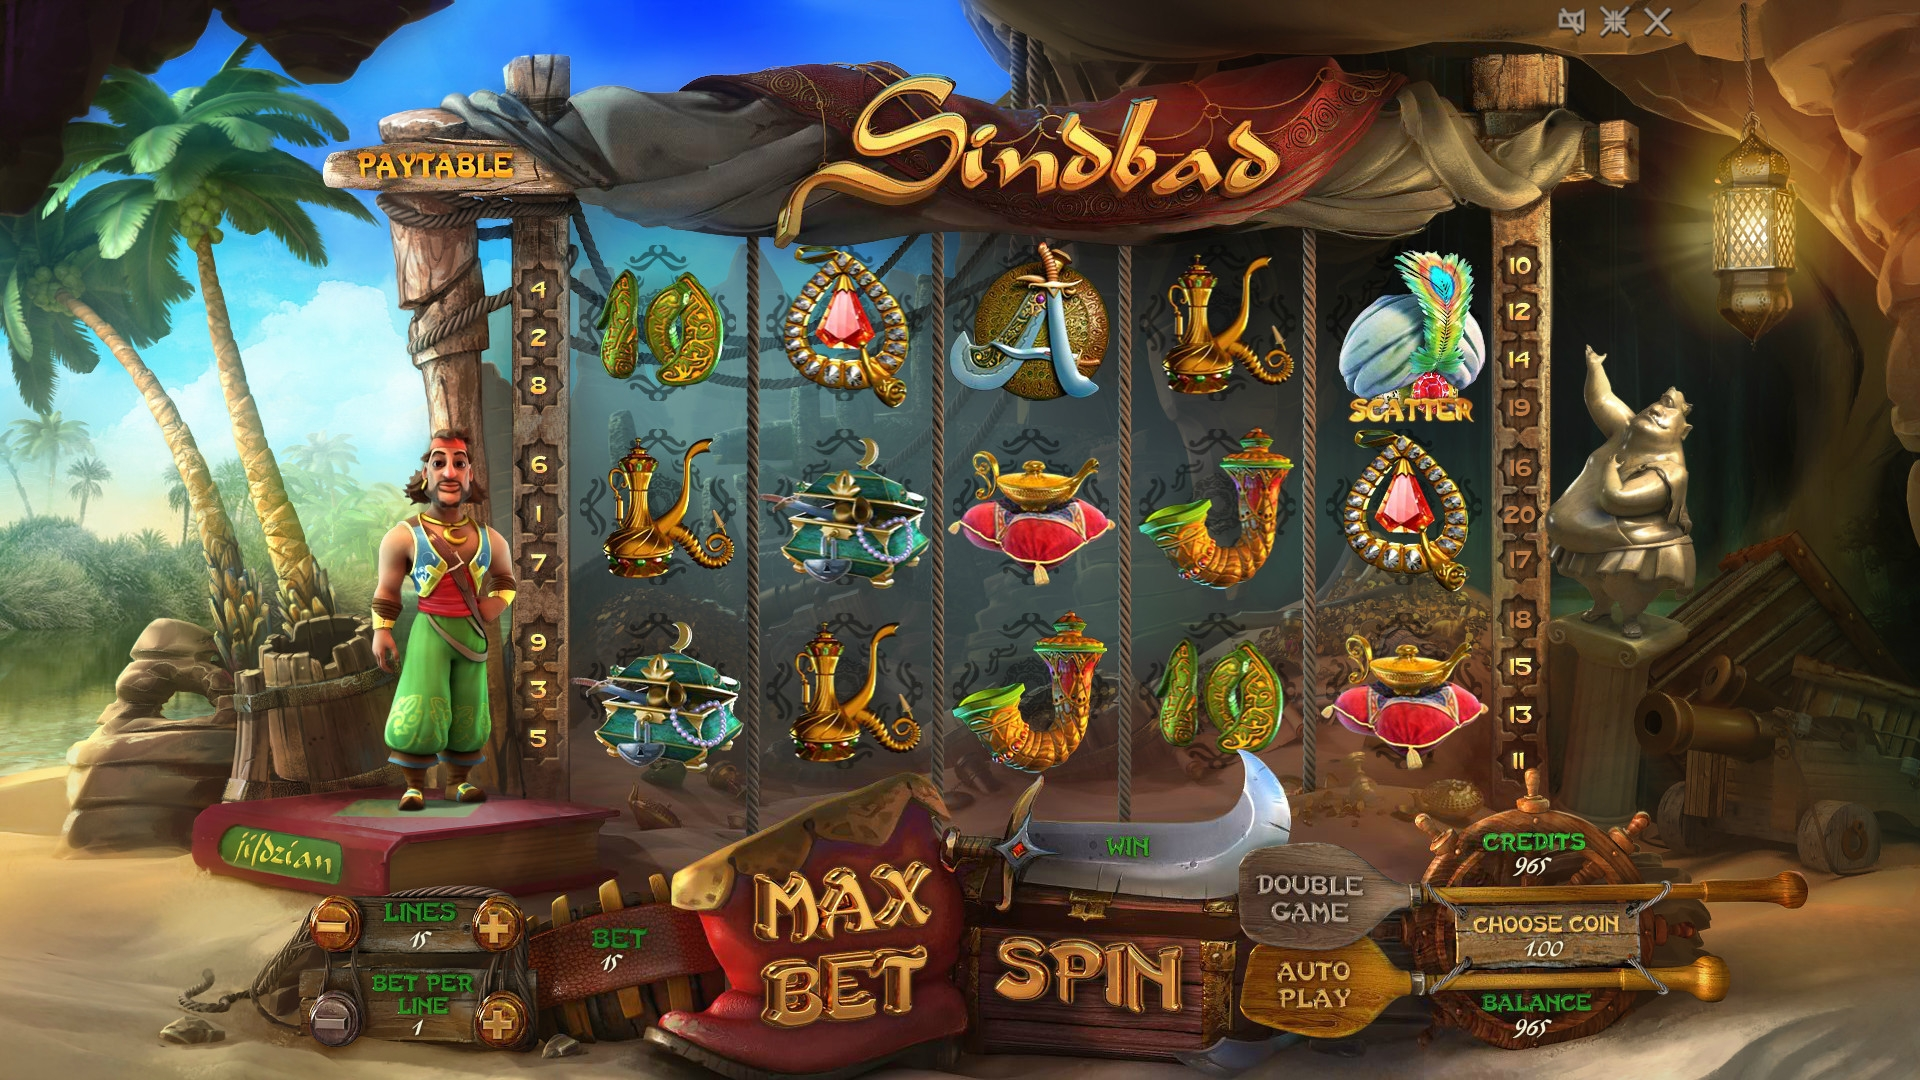 Sindbad (Sindbad) from category Slots